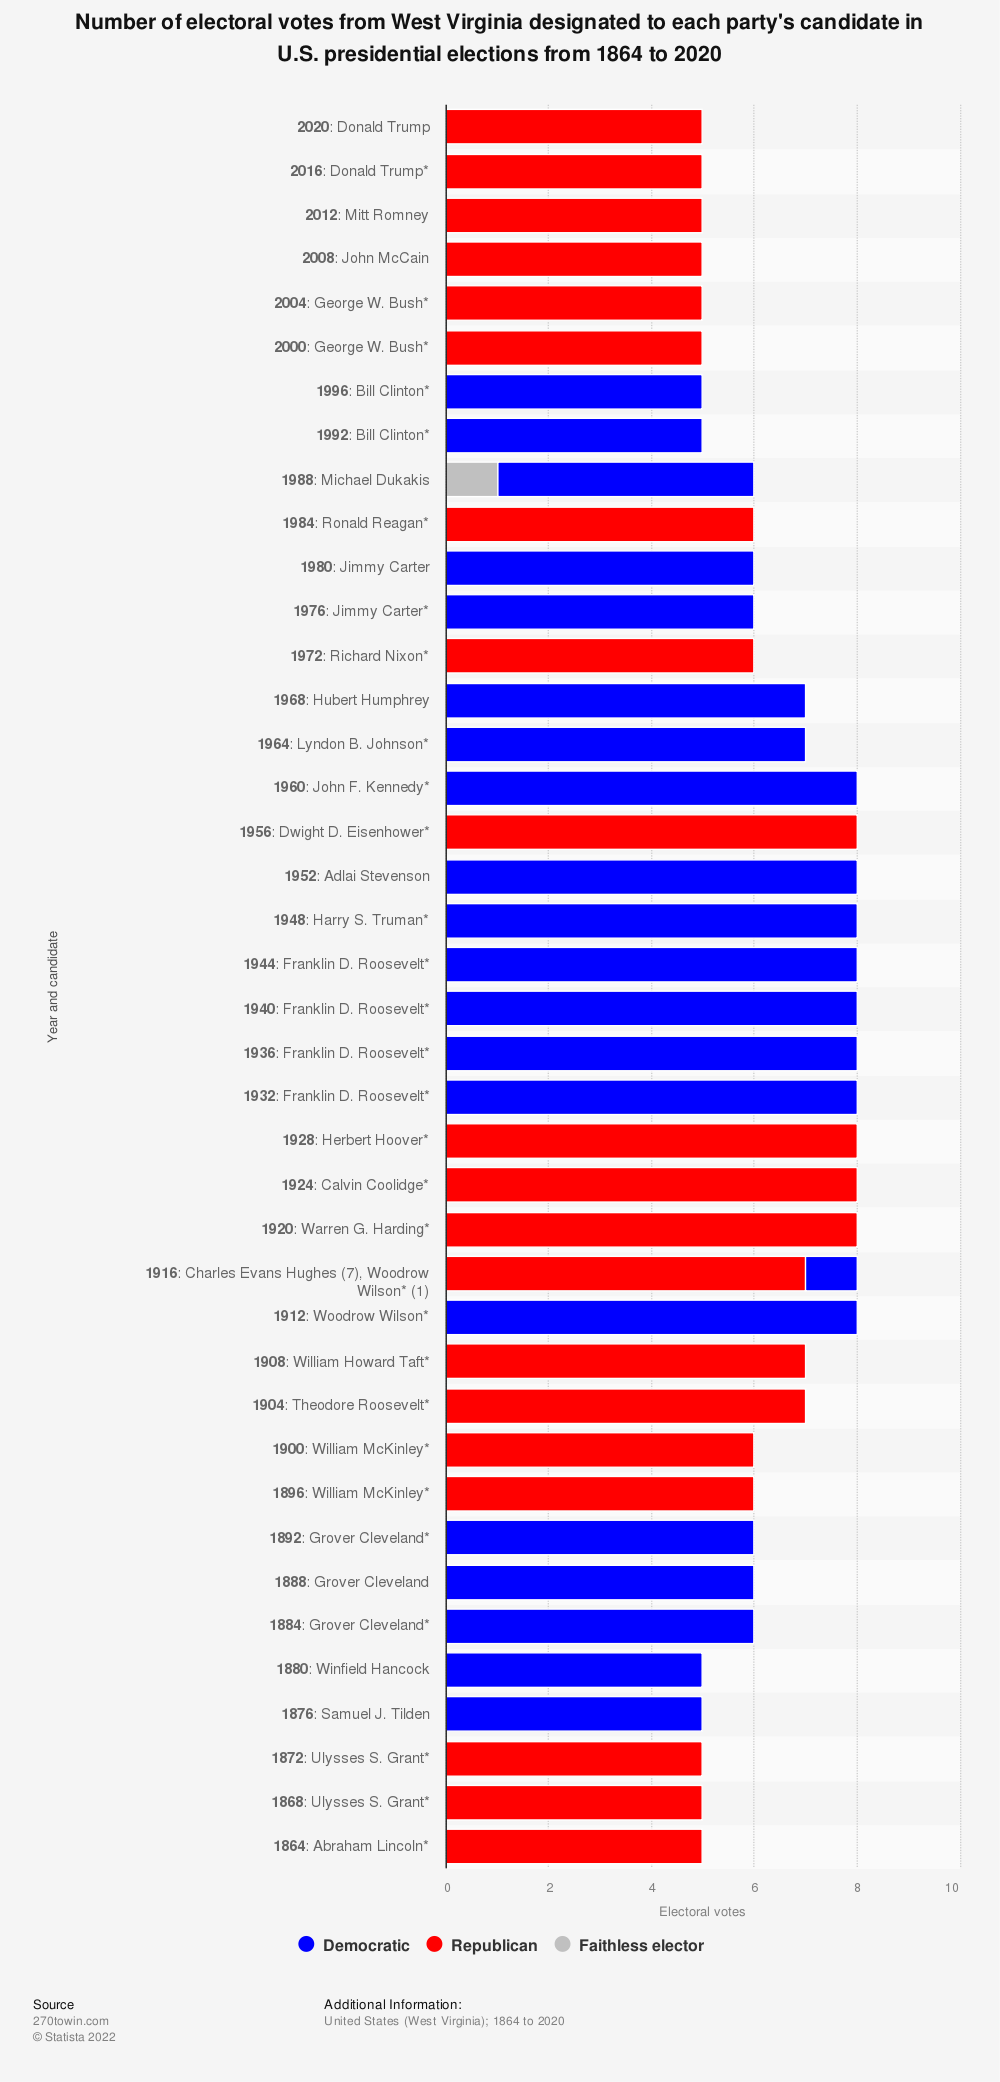 Statistic: Number of electoral votes from West Virginia designated to each party's candidate in U.S. presidential elections from 1864 to 2020 | Statista